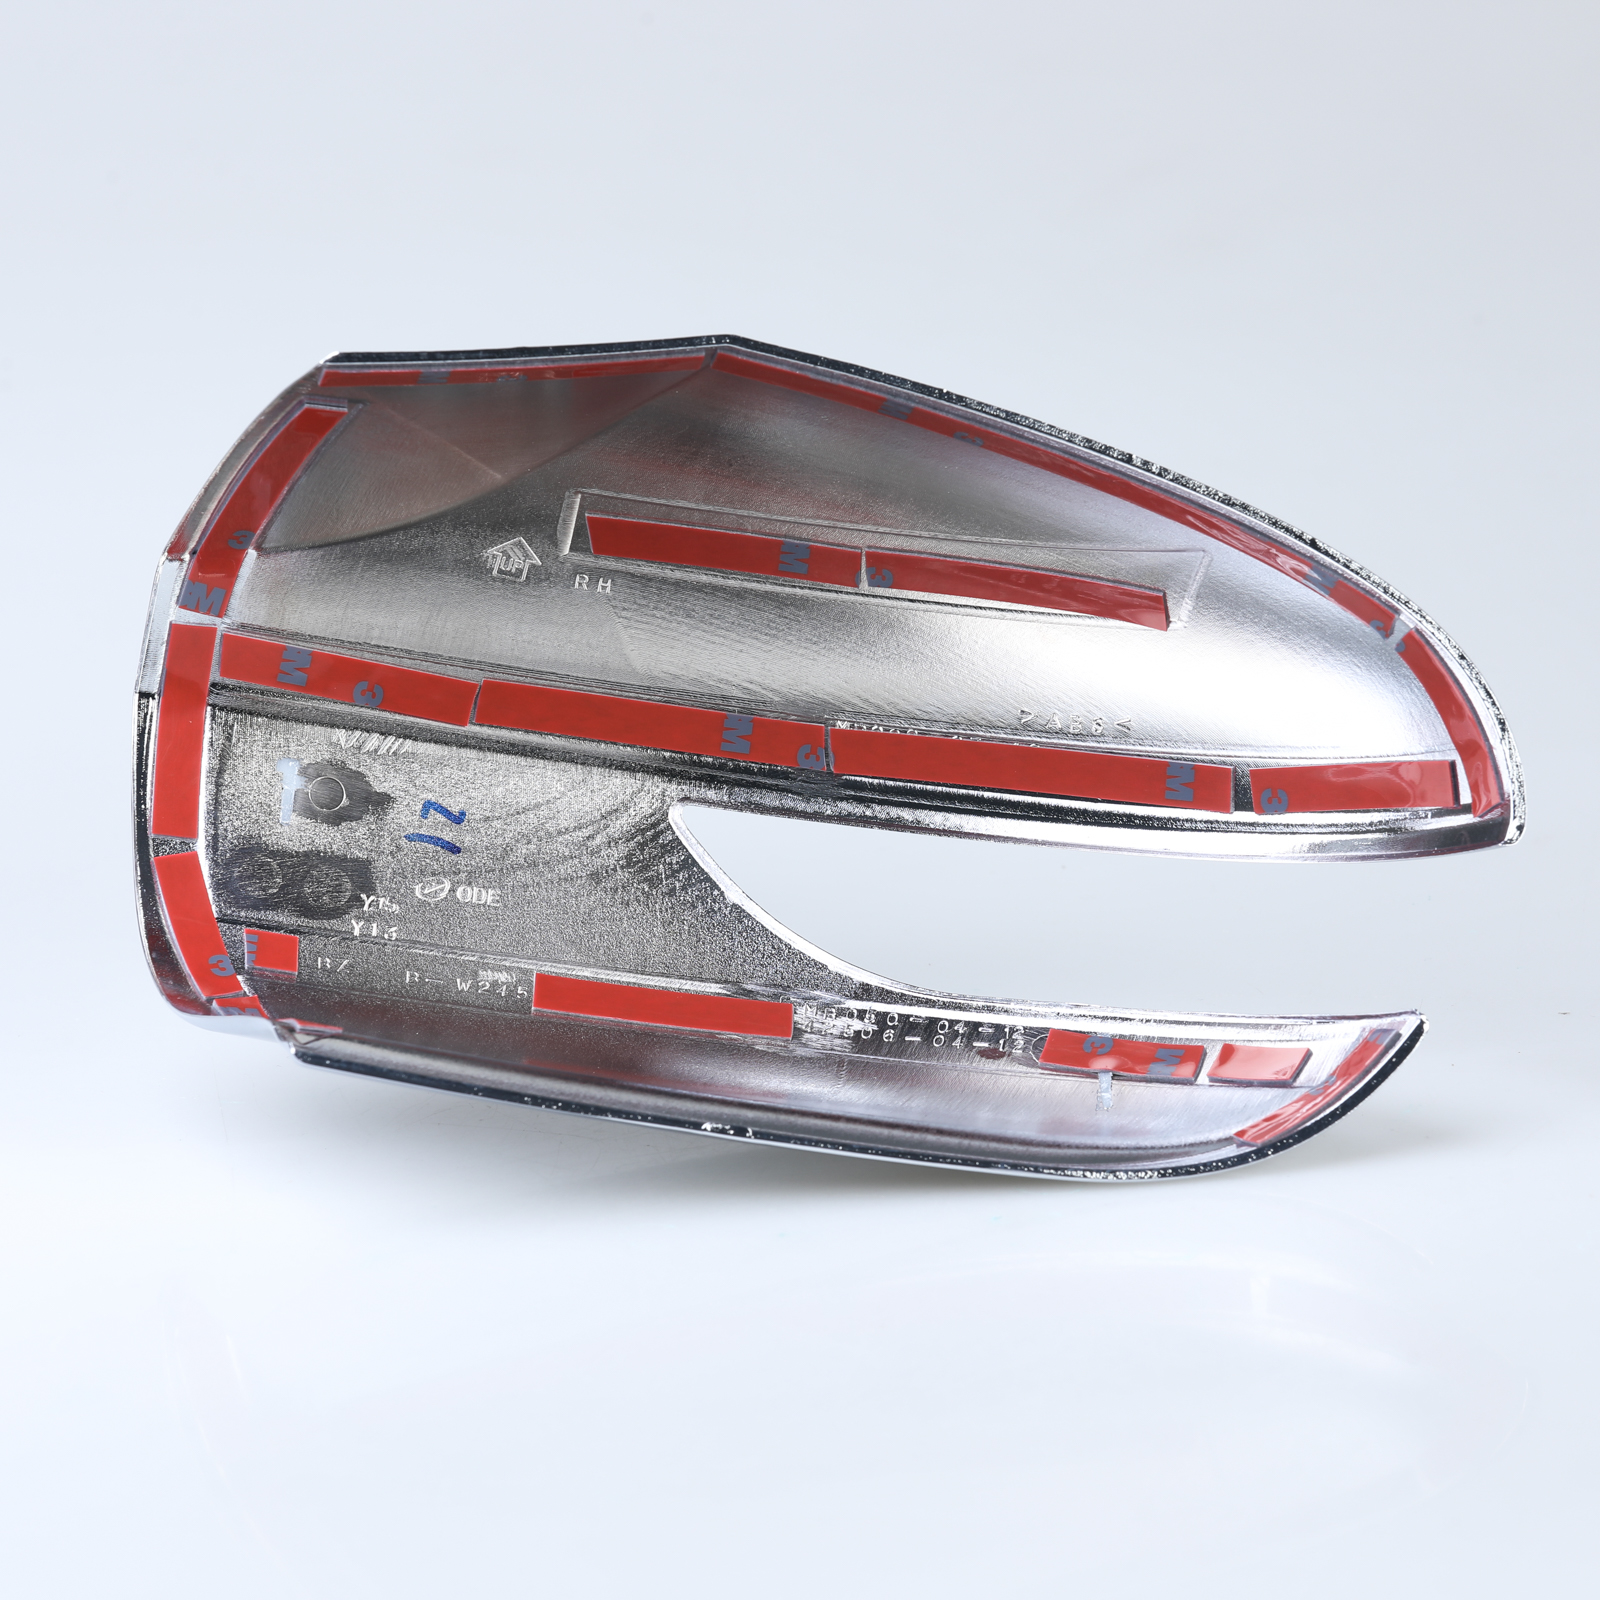 Chrome Door Wing Mirror Covers For Mercedes Benz W245 W169 2004-2008